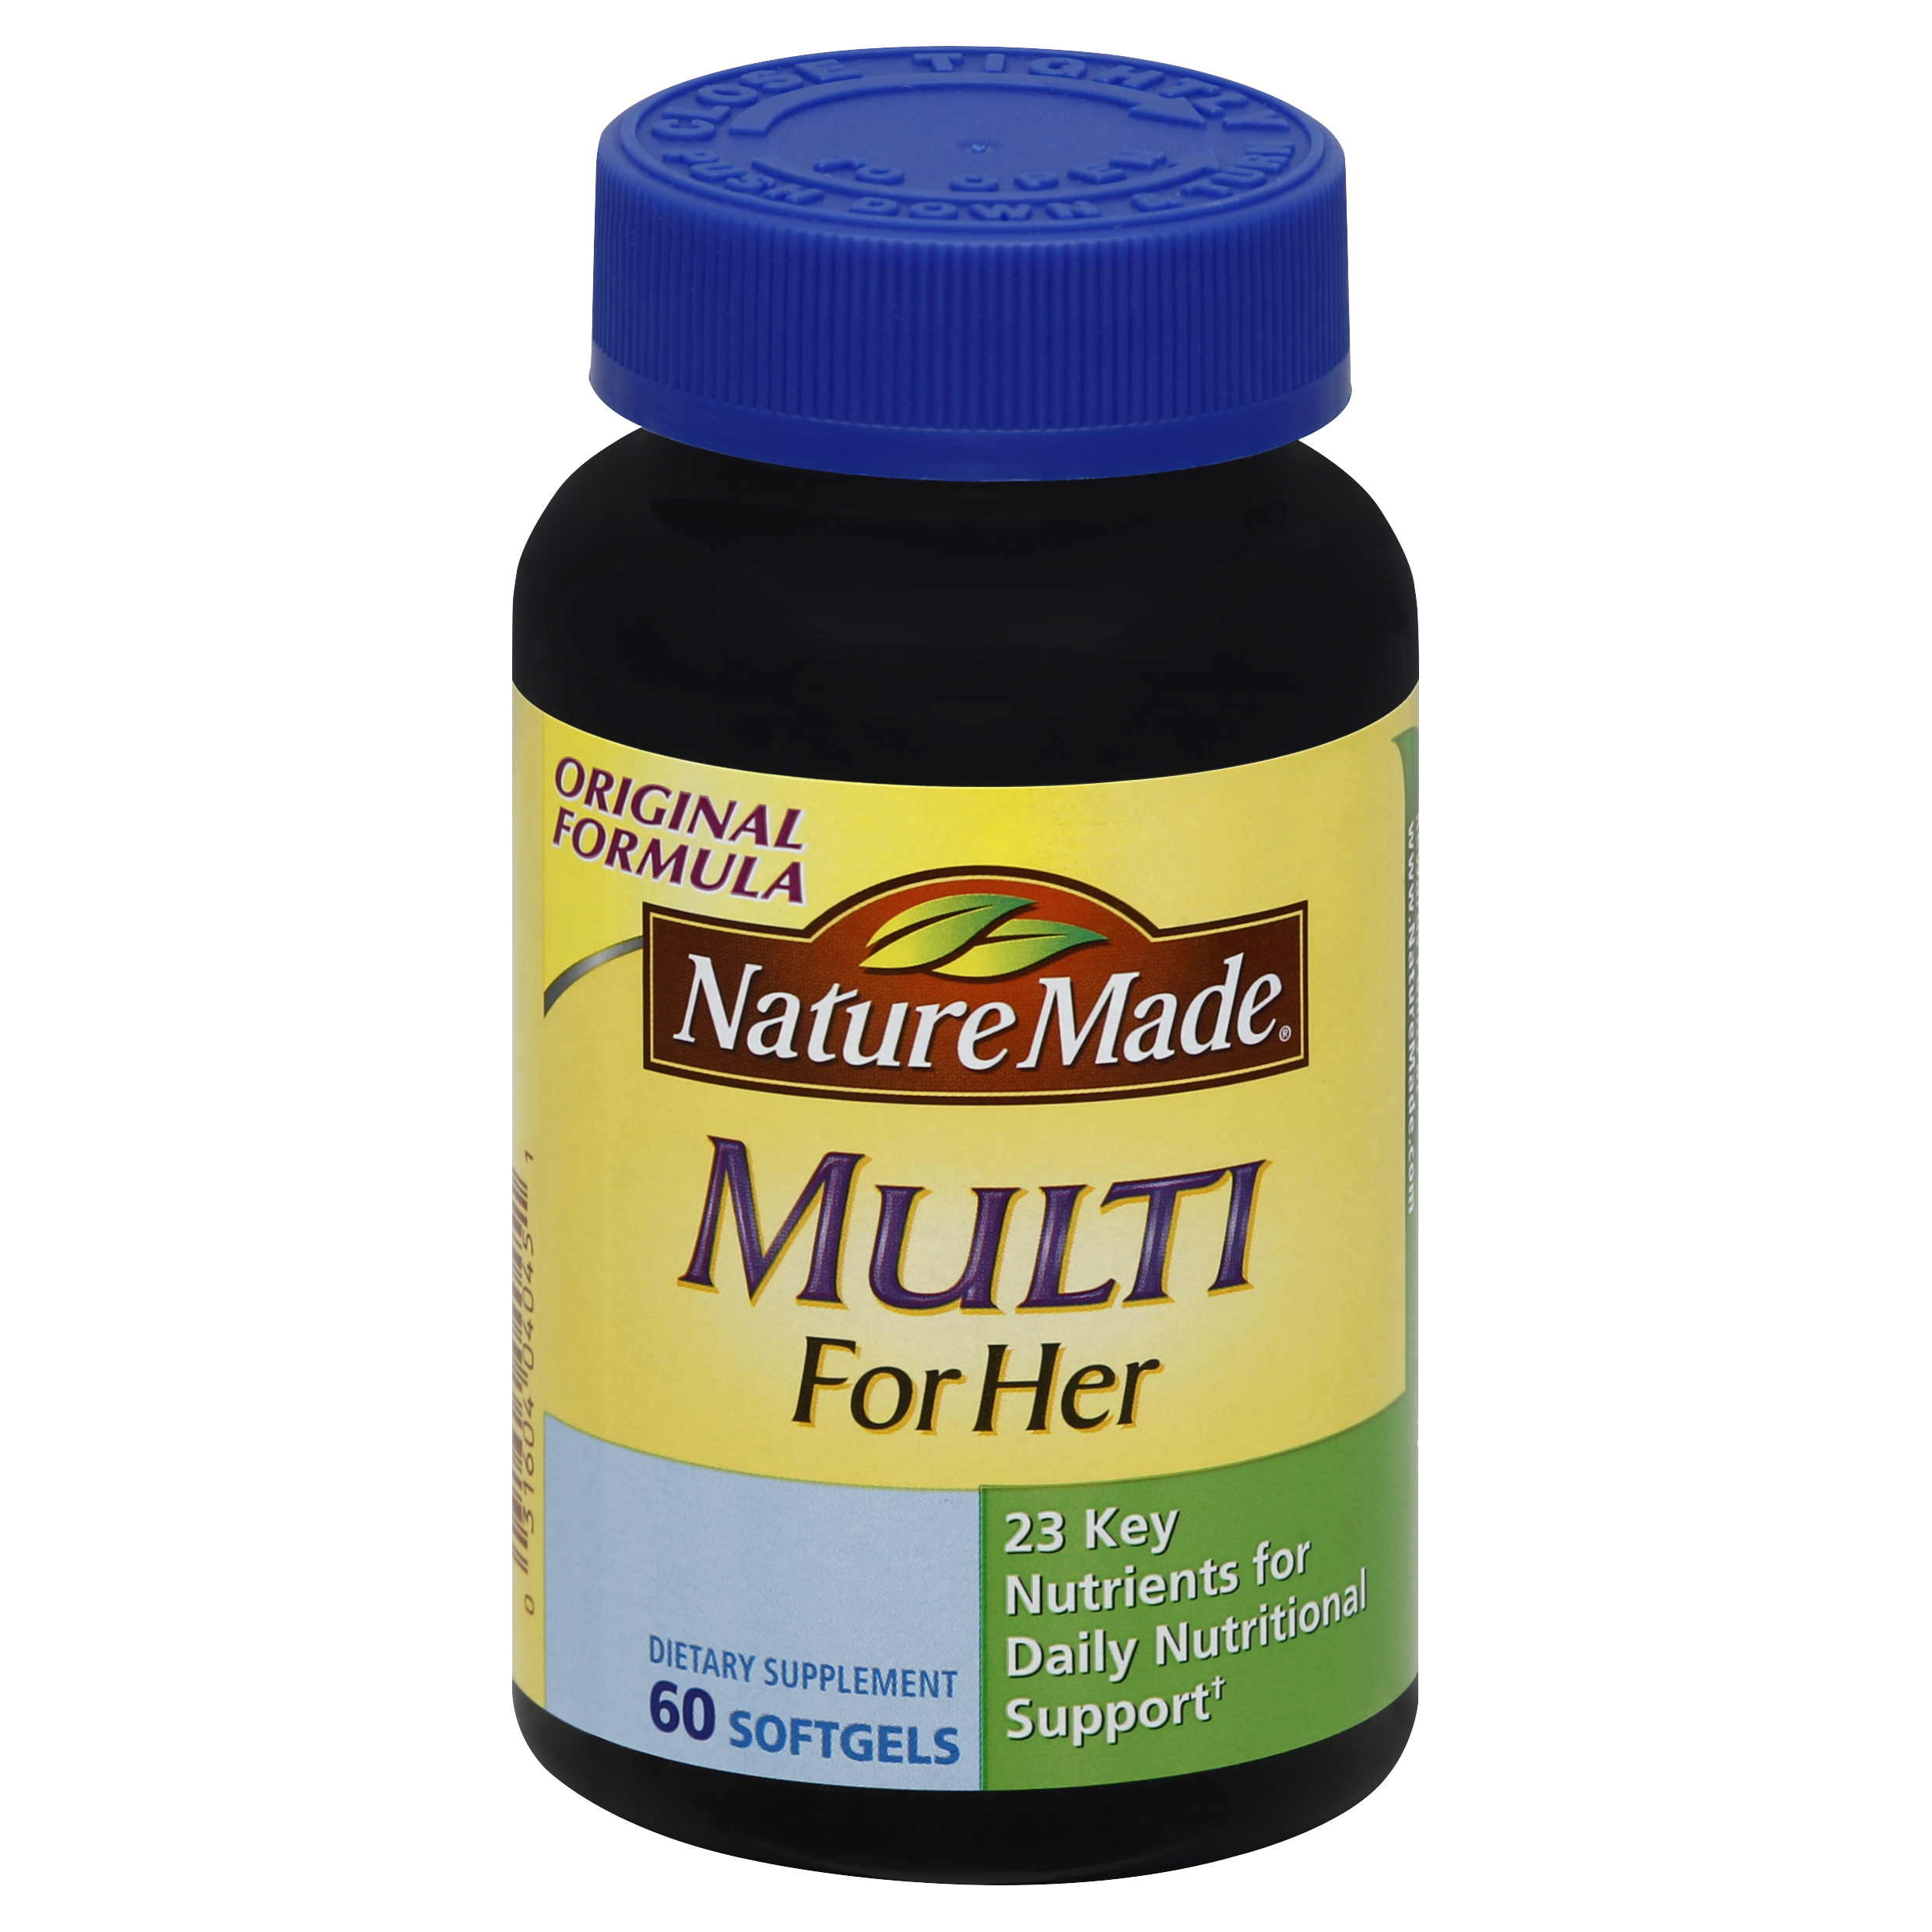 Nature Made Multi Vitamin for Her 60 Softgels